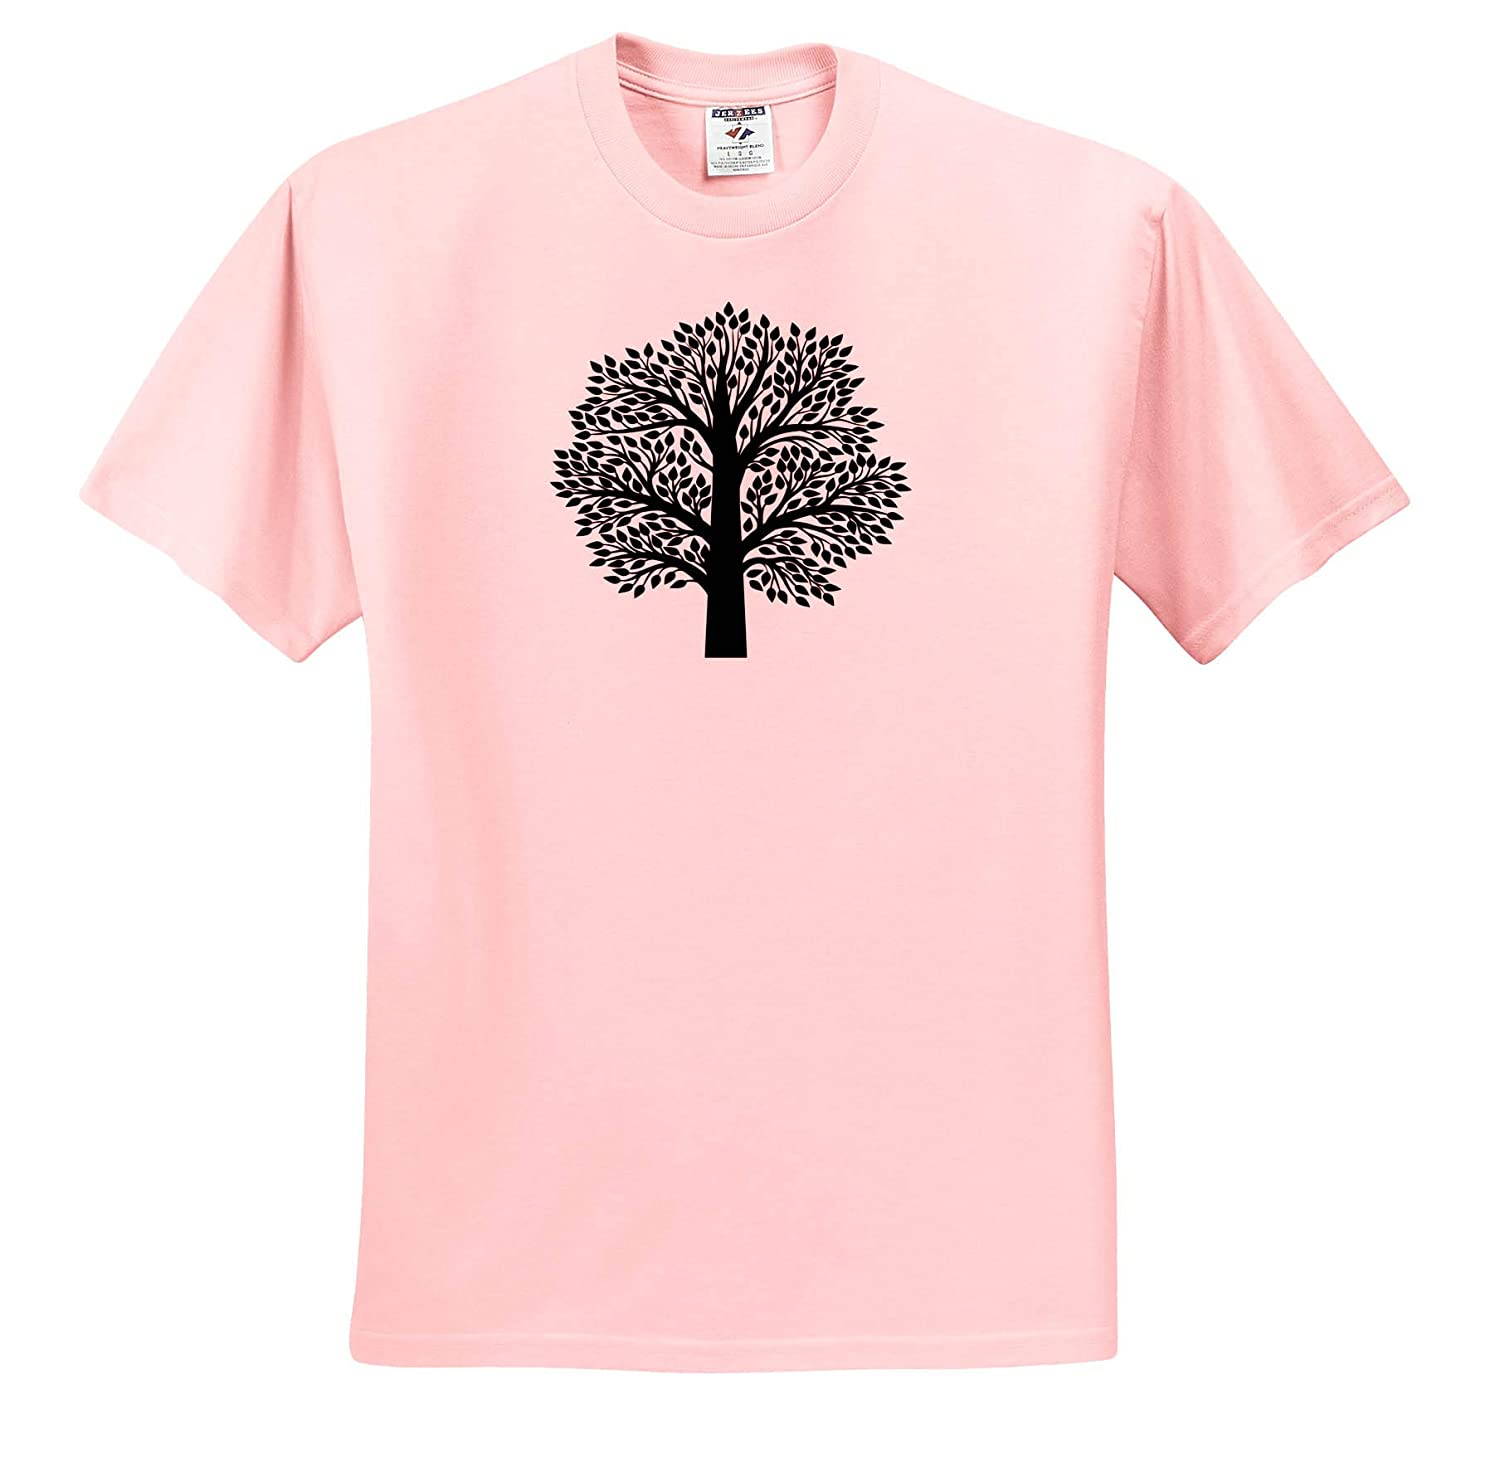 Adult T-Shirt XL Image of Tree ts/_321054 3dRose Carrie Quote Image